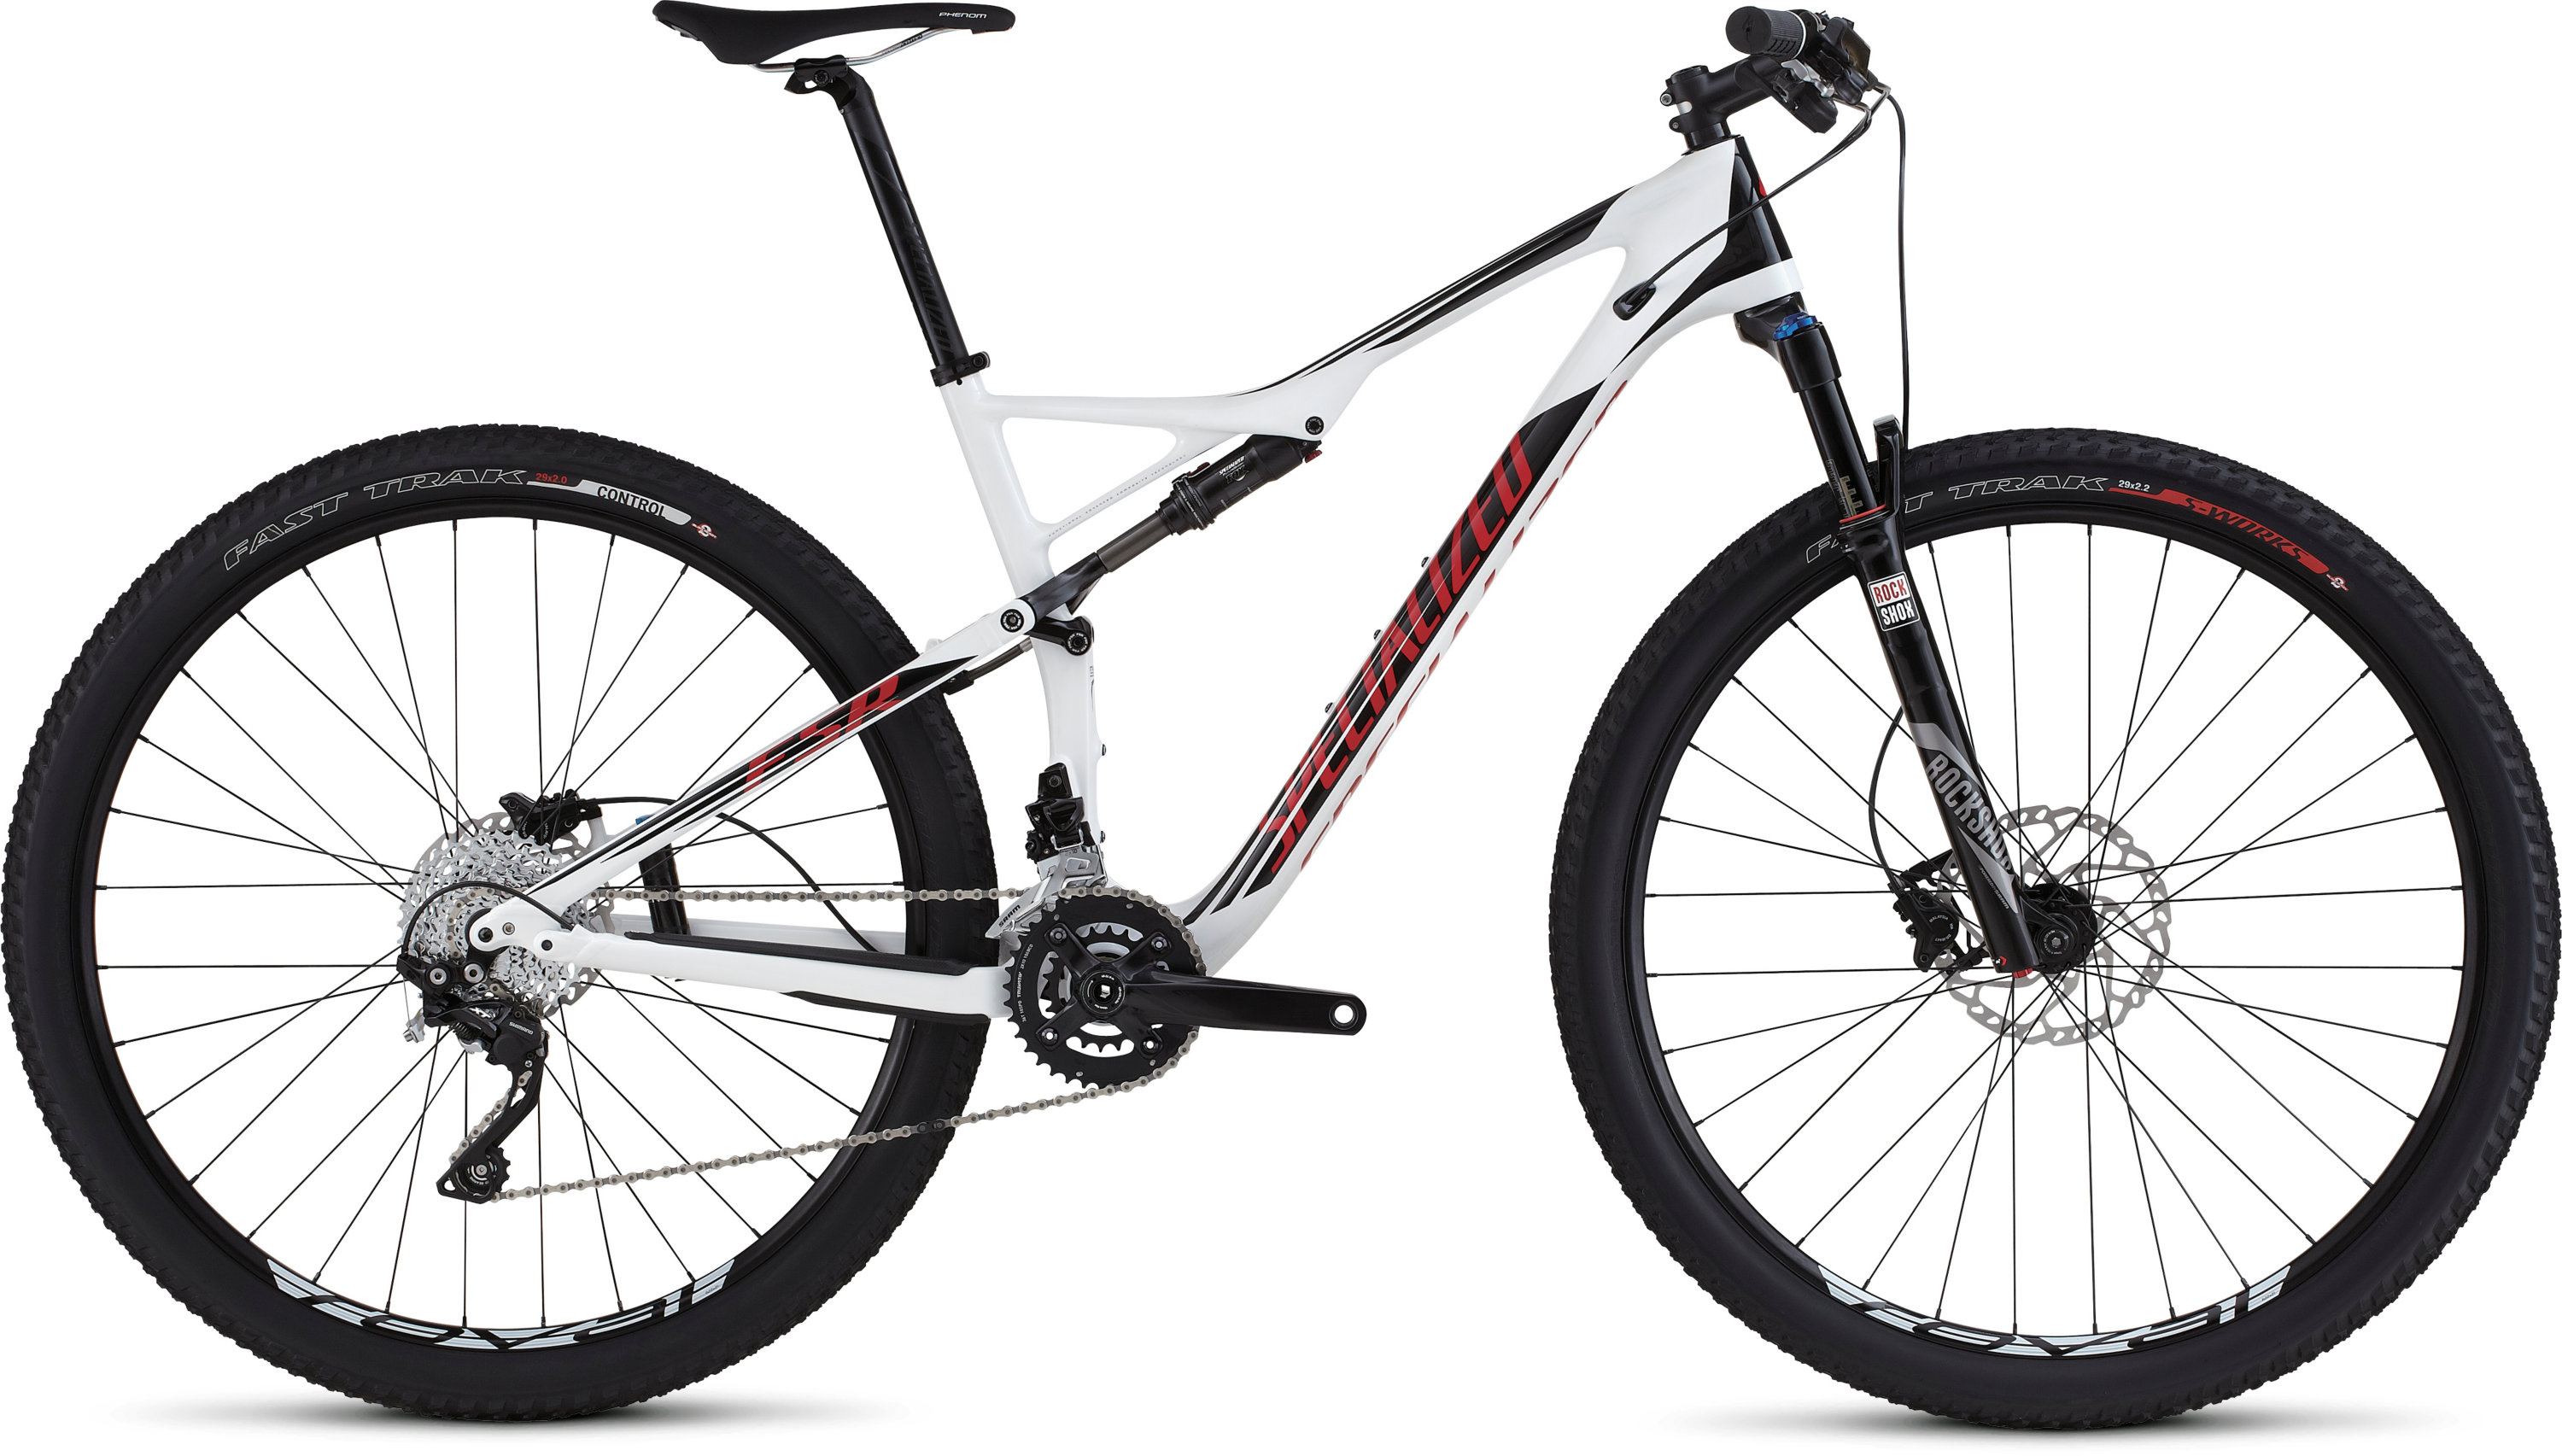 SPECIALIZED EPIC FSR COMP CARBON 29 WHT/BLK/RED L - Bike Maniac